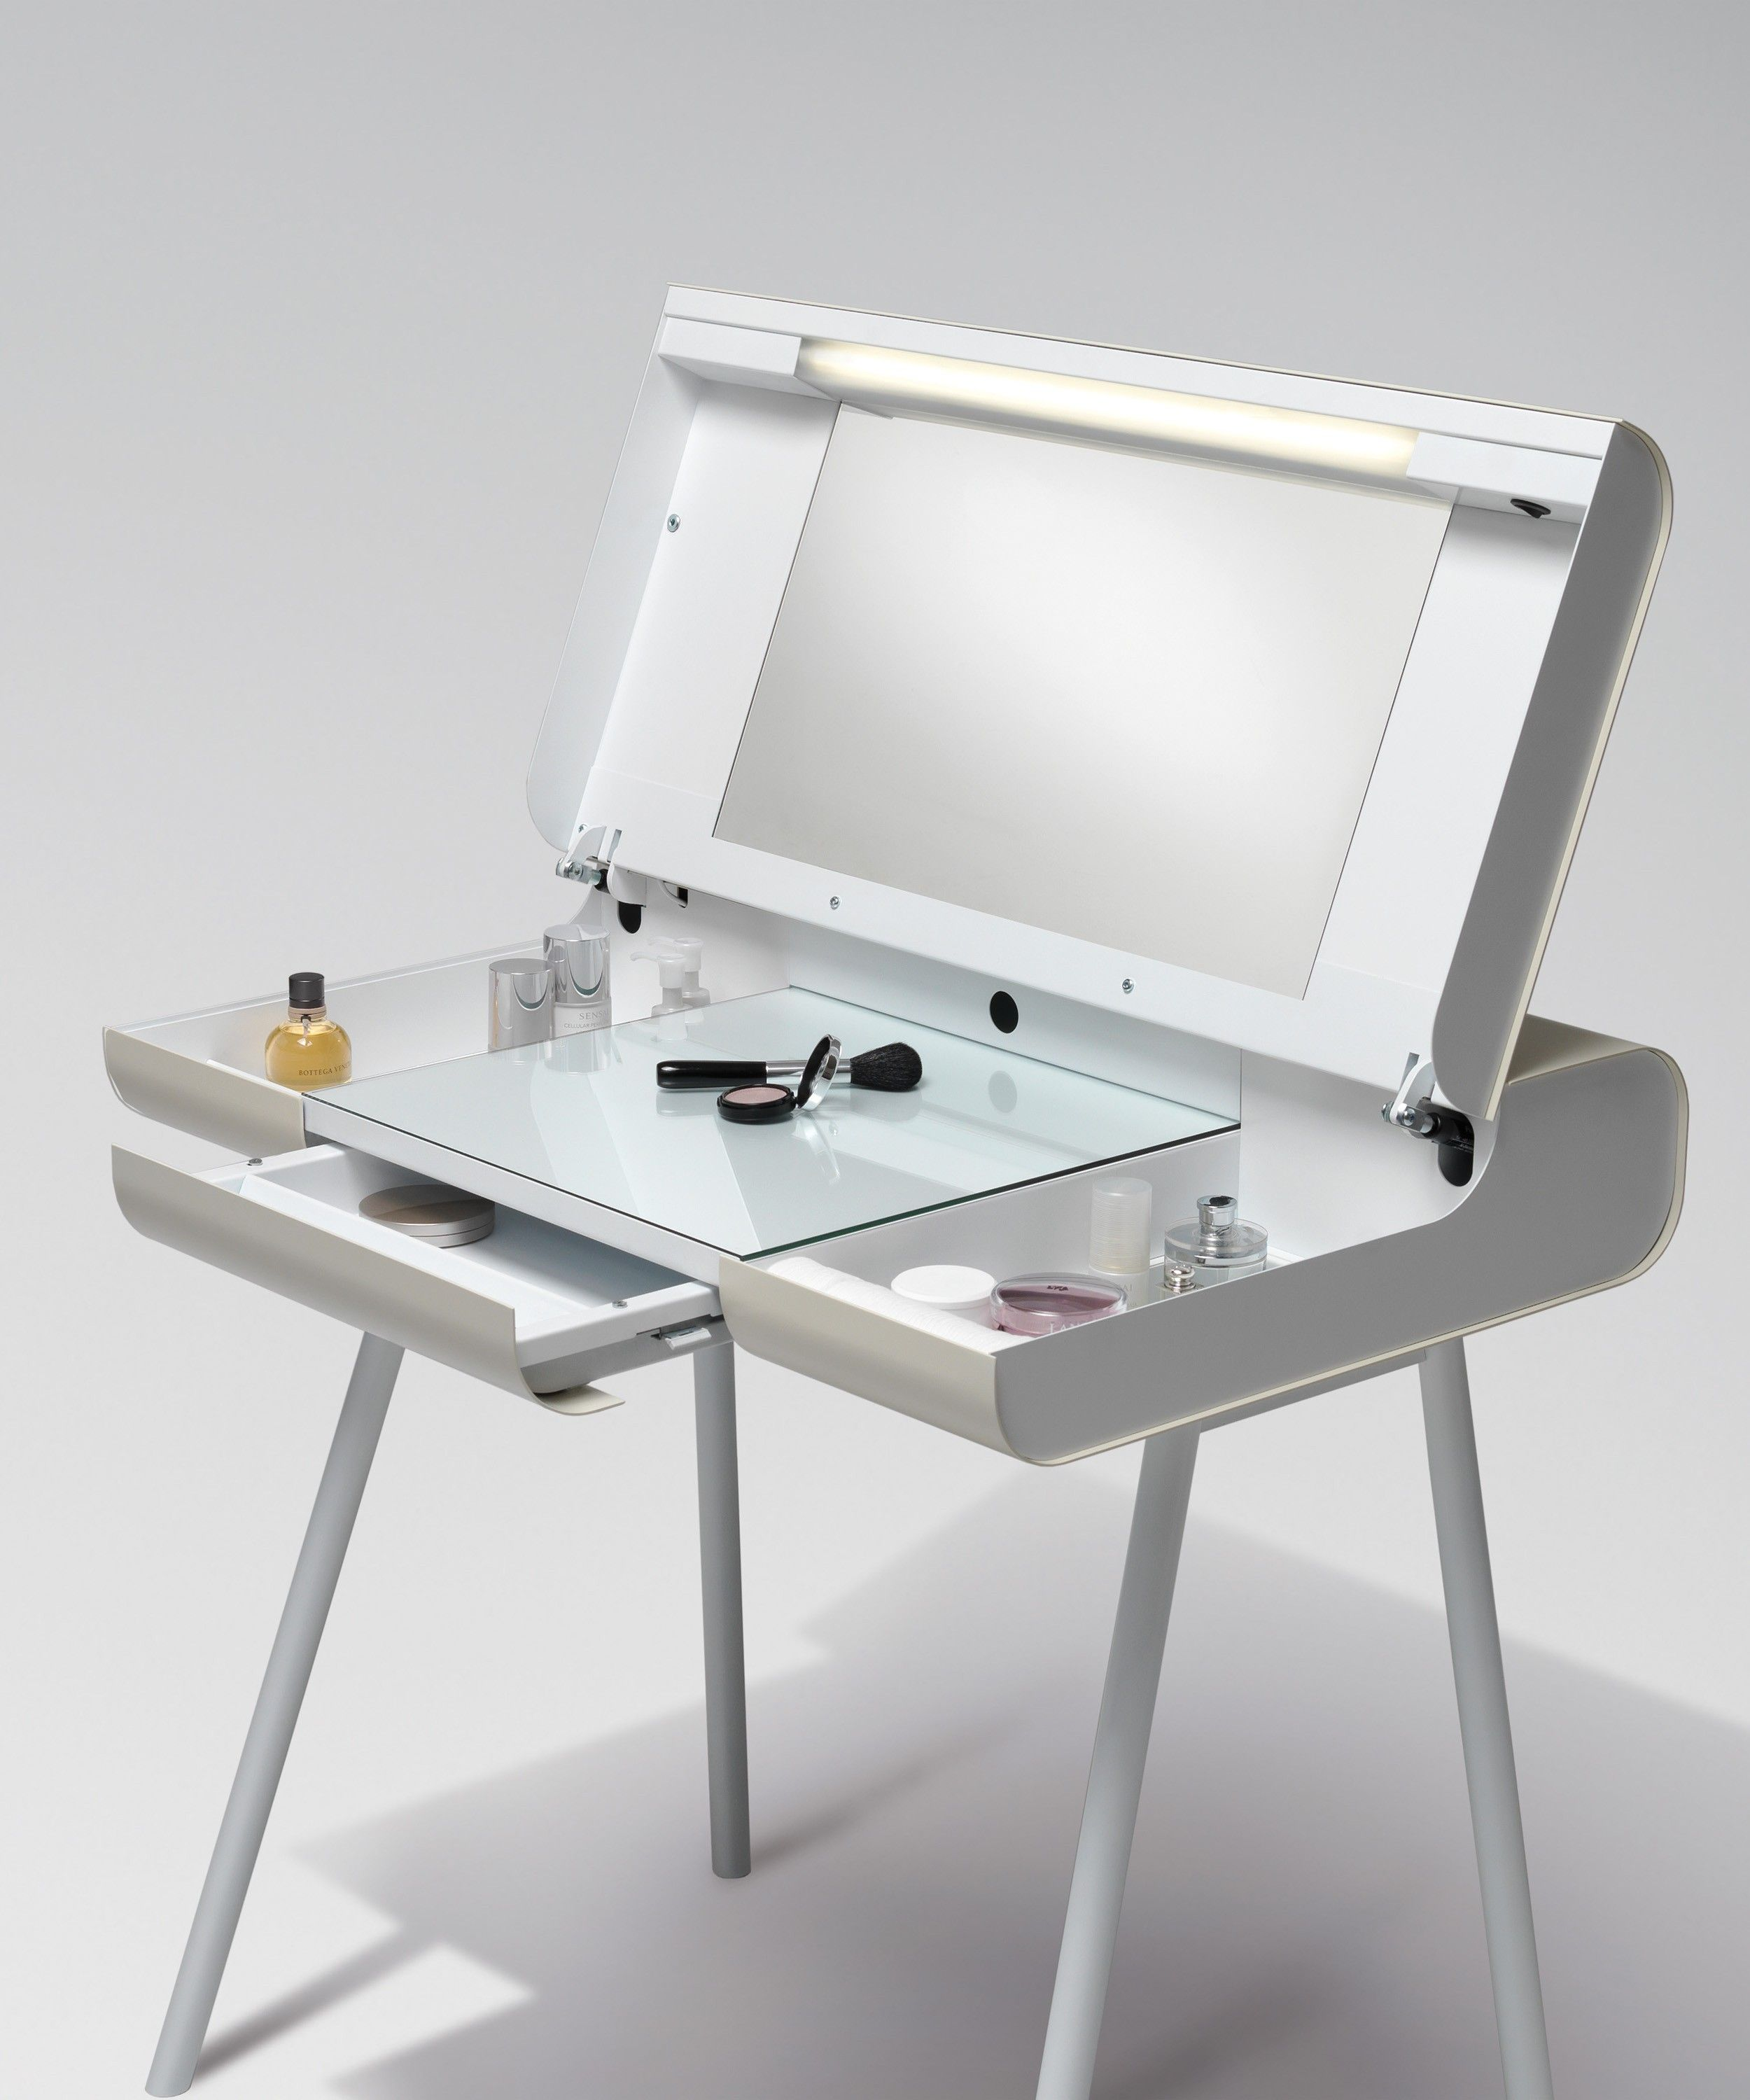 vanity com goods your rewards with glass in pin at store free club o overstock get shipping over table orders on home